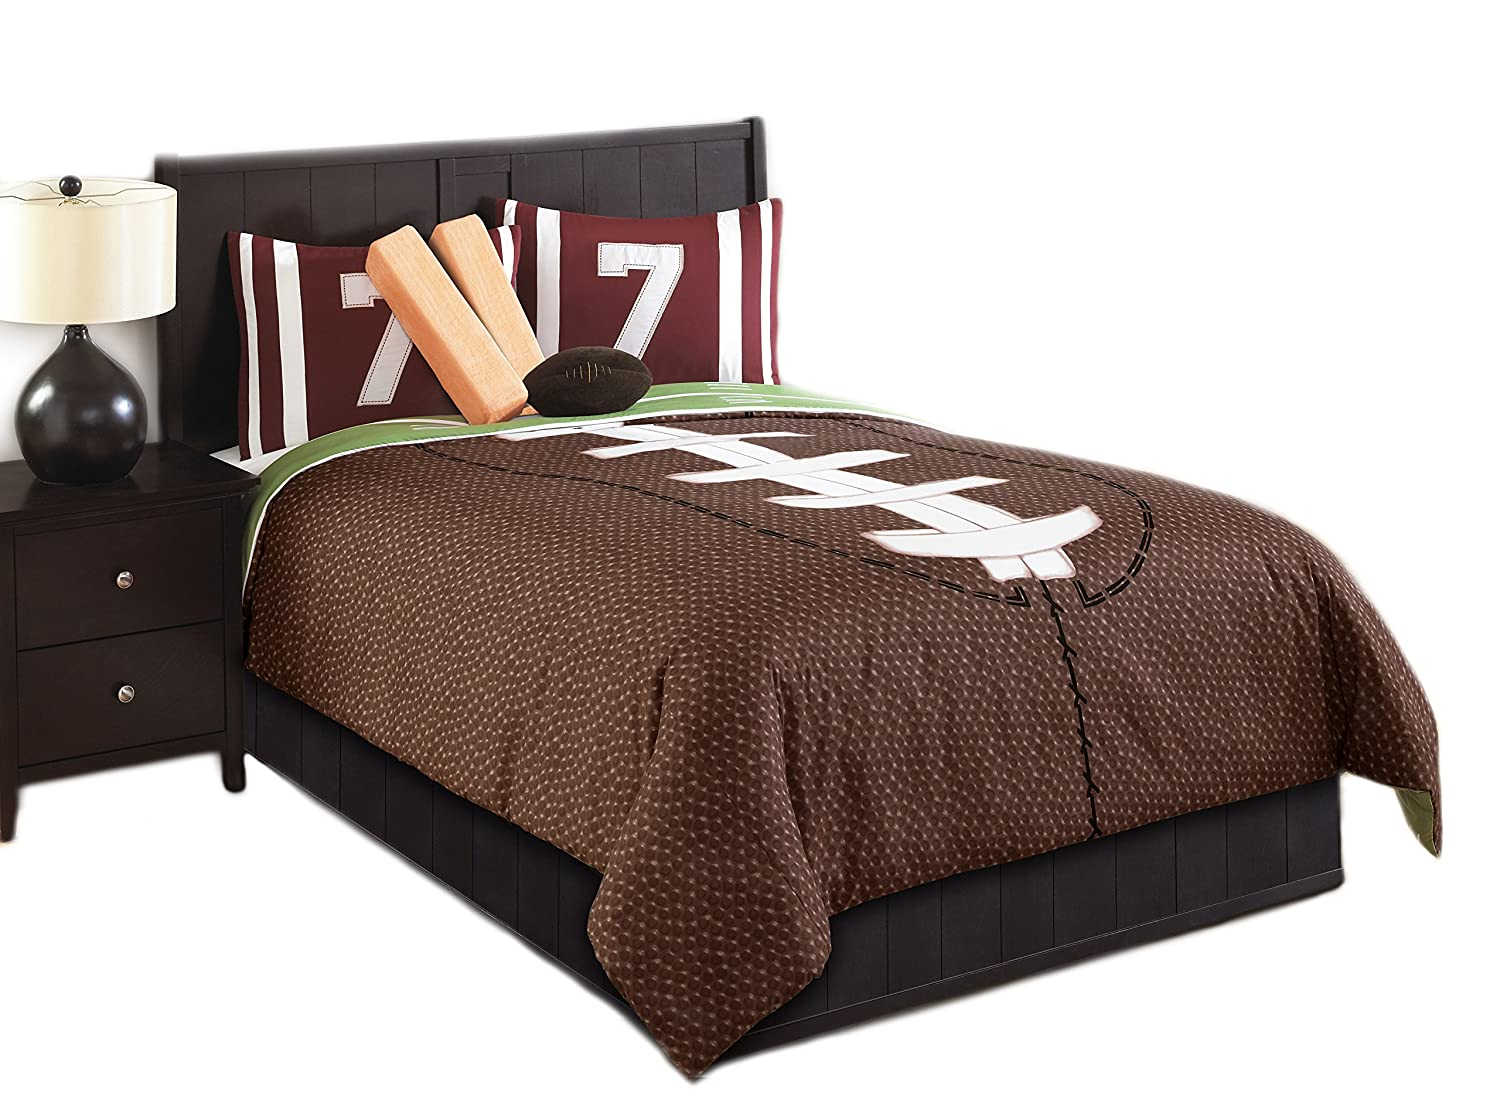 Nfl bedding for boys - Amazon Com Hallmart Kids 43667 5 Piece Touchdown Comforter Set Twin Brown Green Home Kitchen